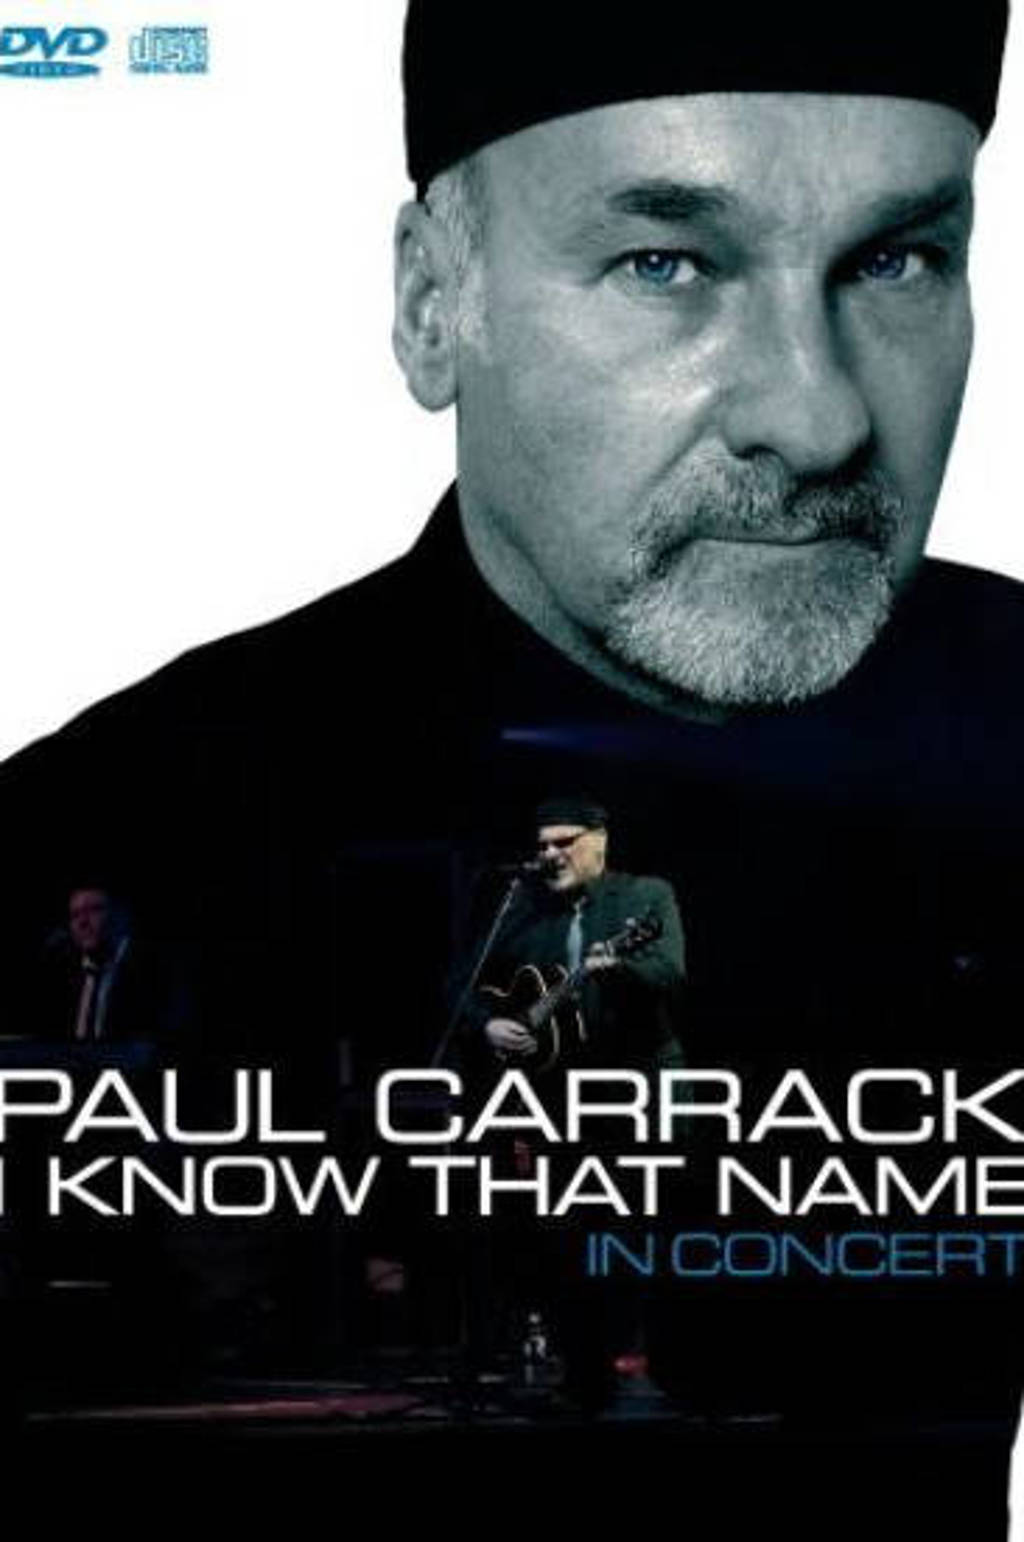 Paul Carrack - I Know That Name - In Concert (DVD)